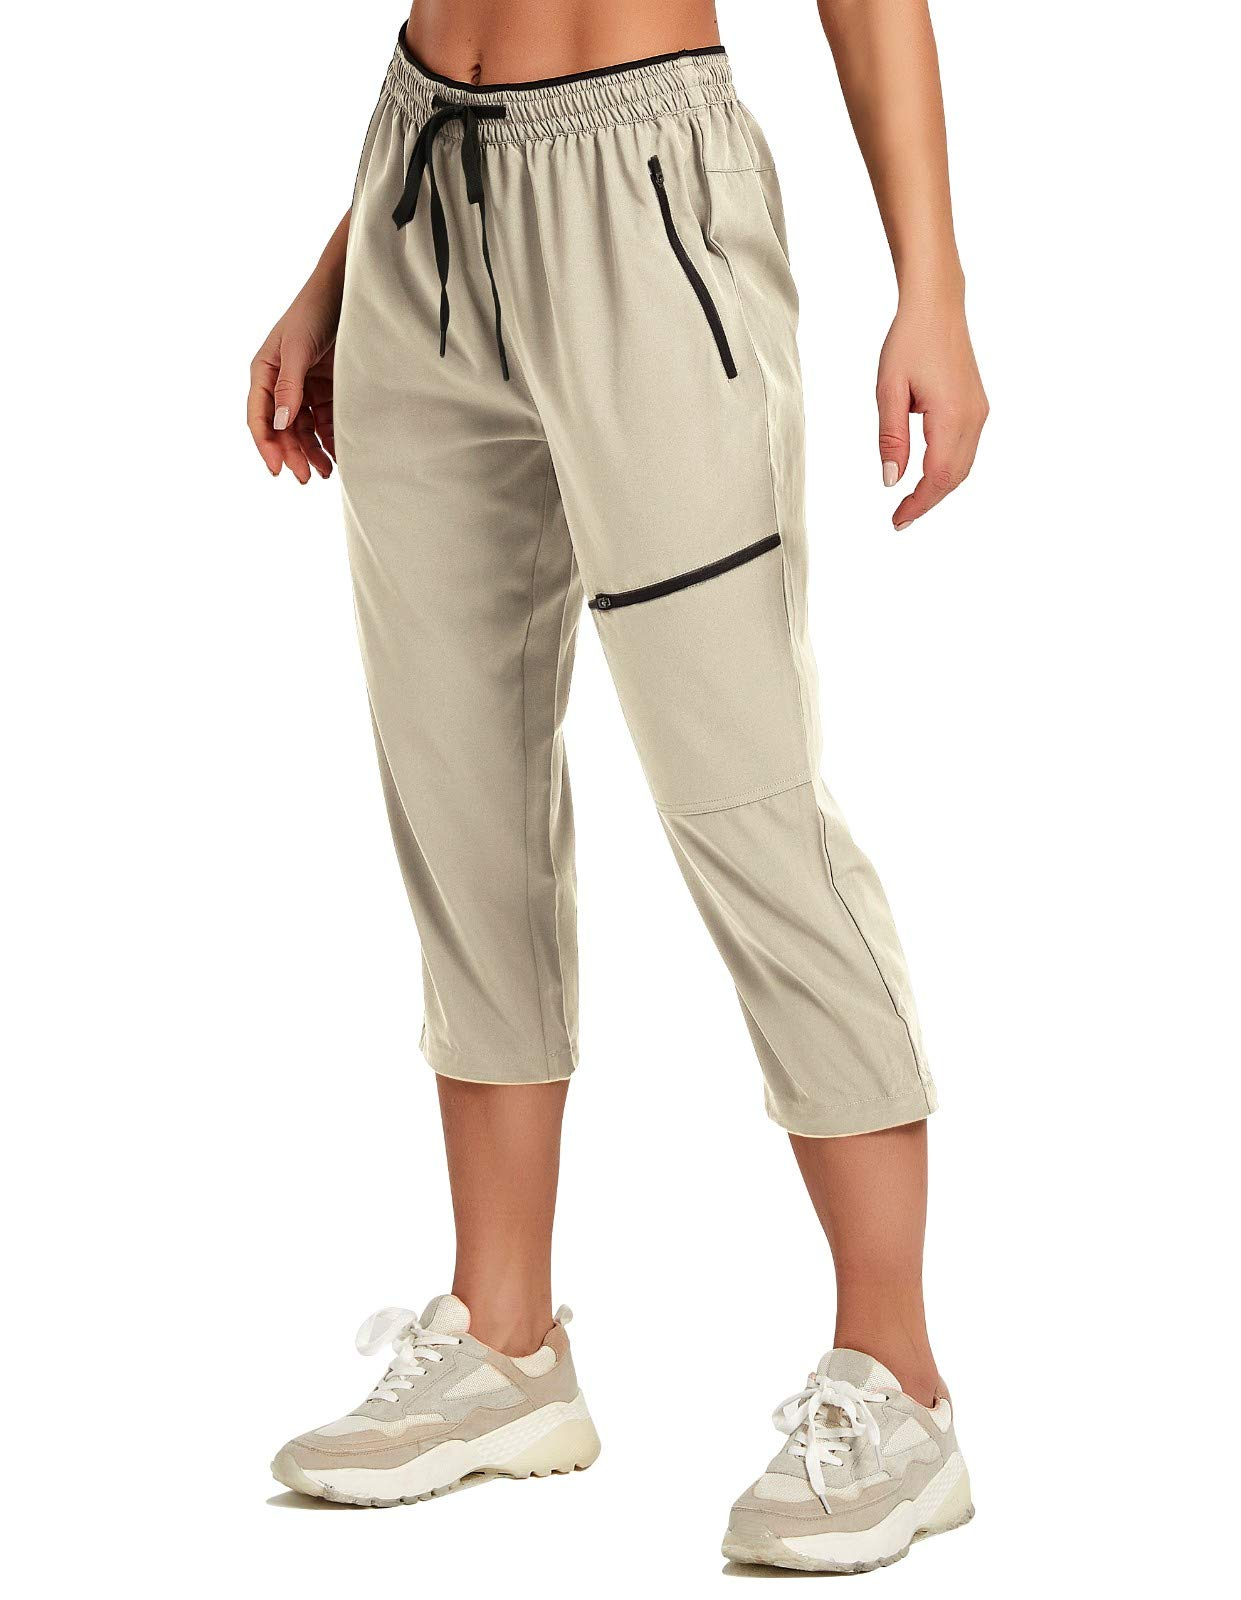 SPECIALMAGIC Women's Hiking Capris Pants Casual Summer Quick Dry Lightweight Stretch Running Joggers with Zipper Pockets